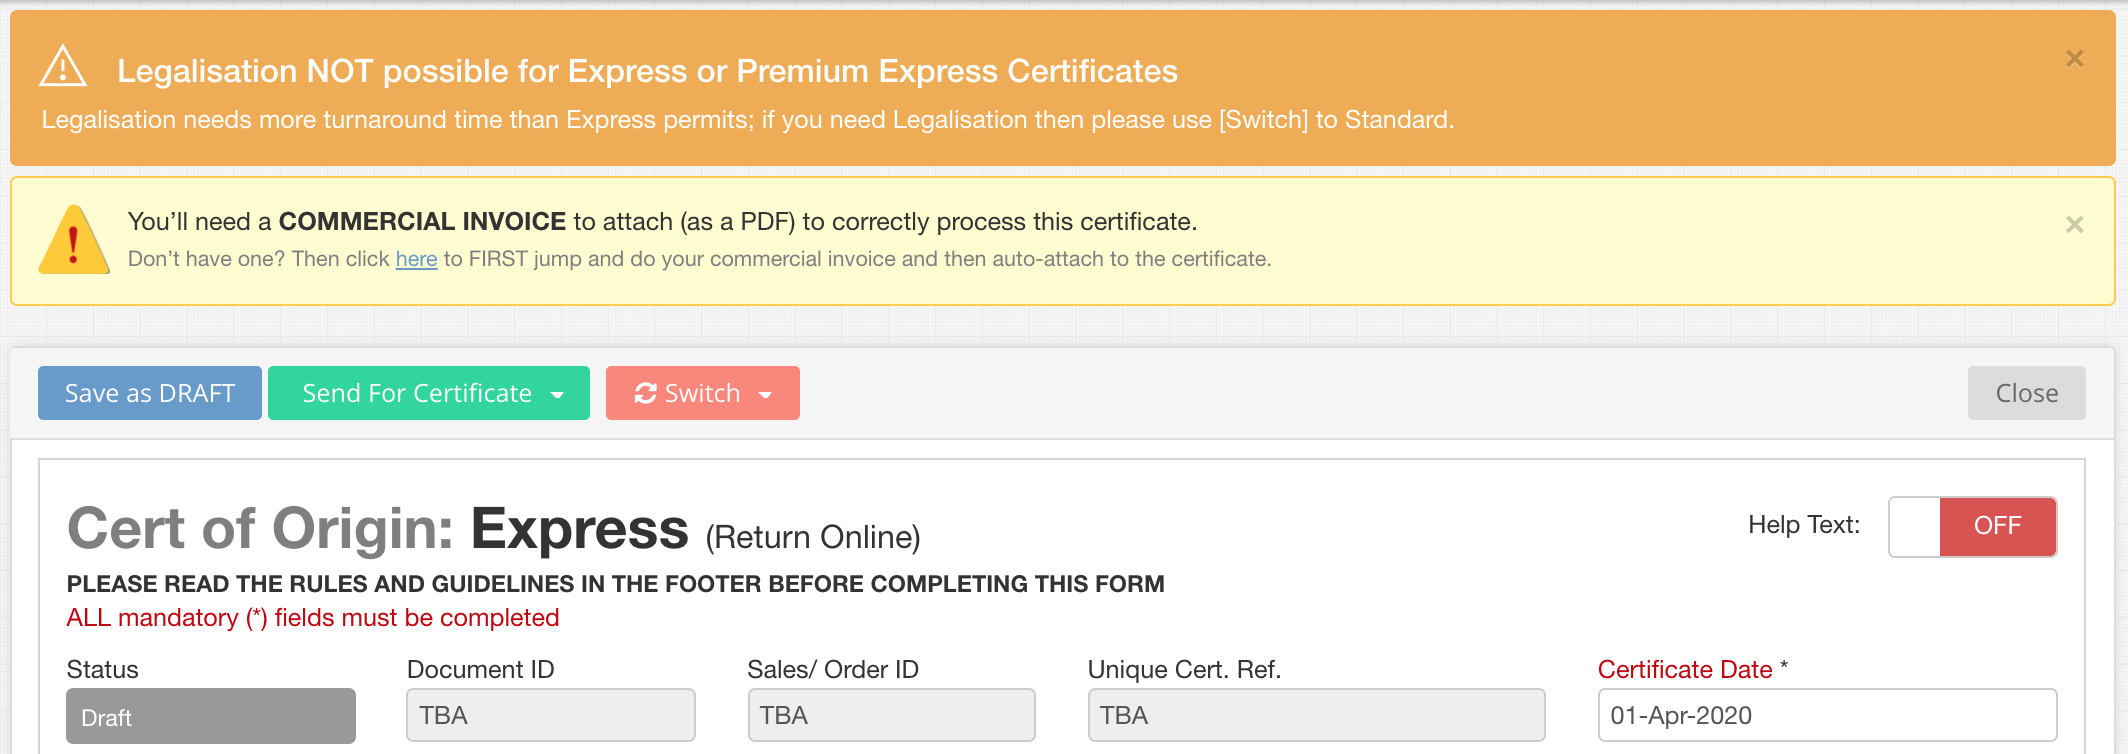 Messages on EC Certificate of Origin